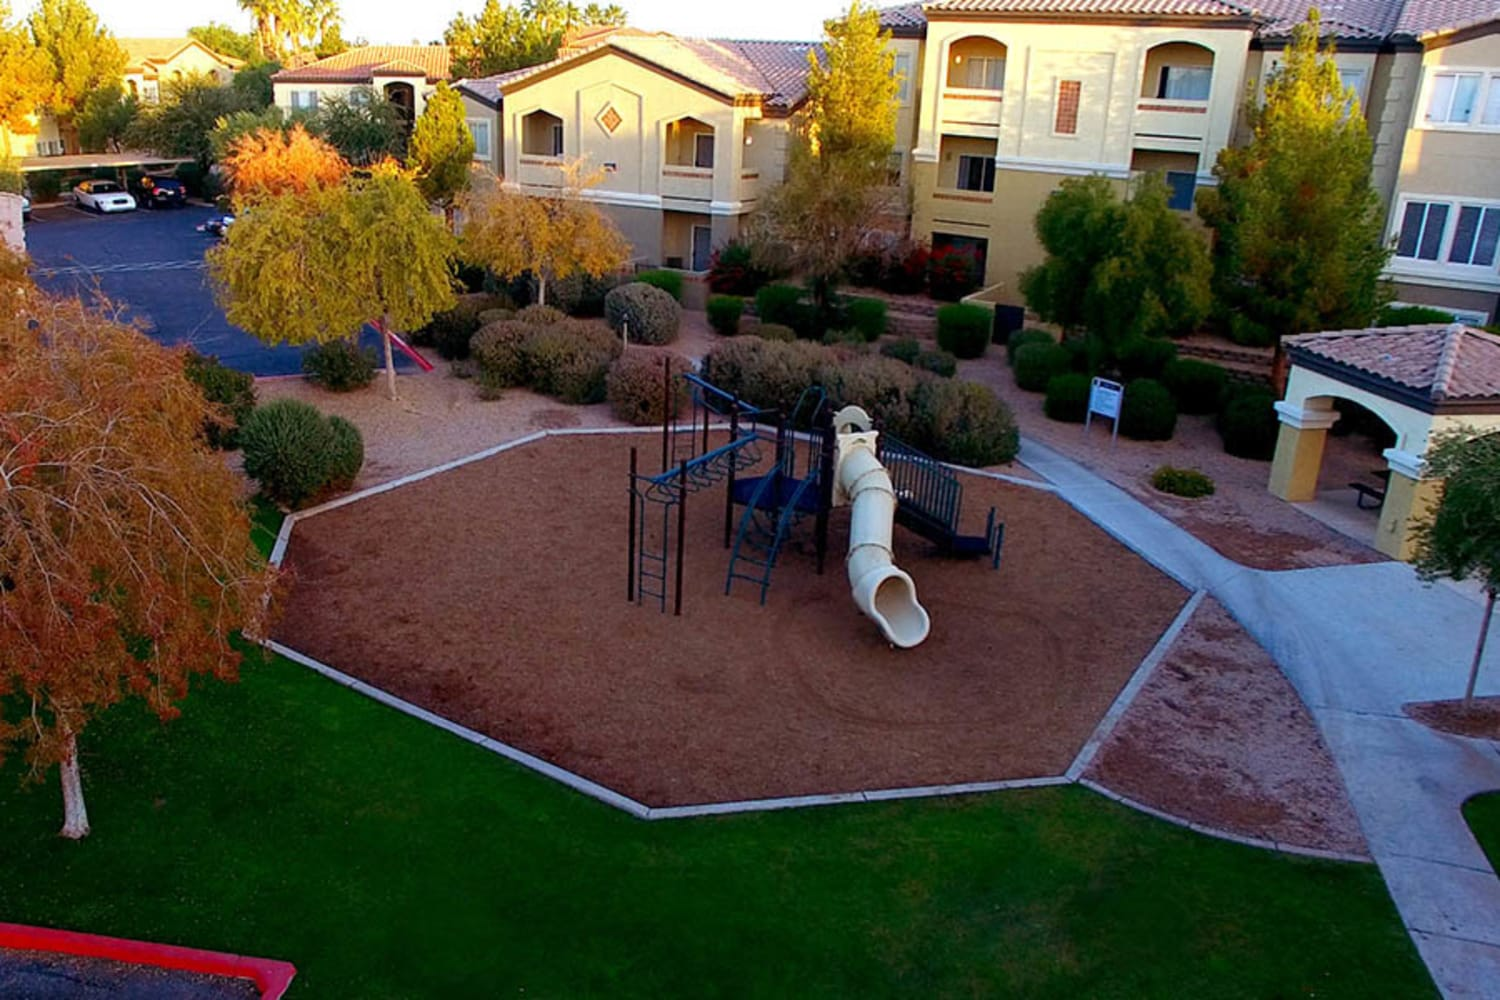 2150 Arizona Ave South in Chandler, Arizona, offers a playground